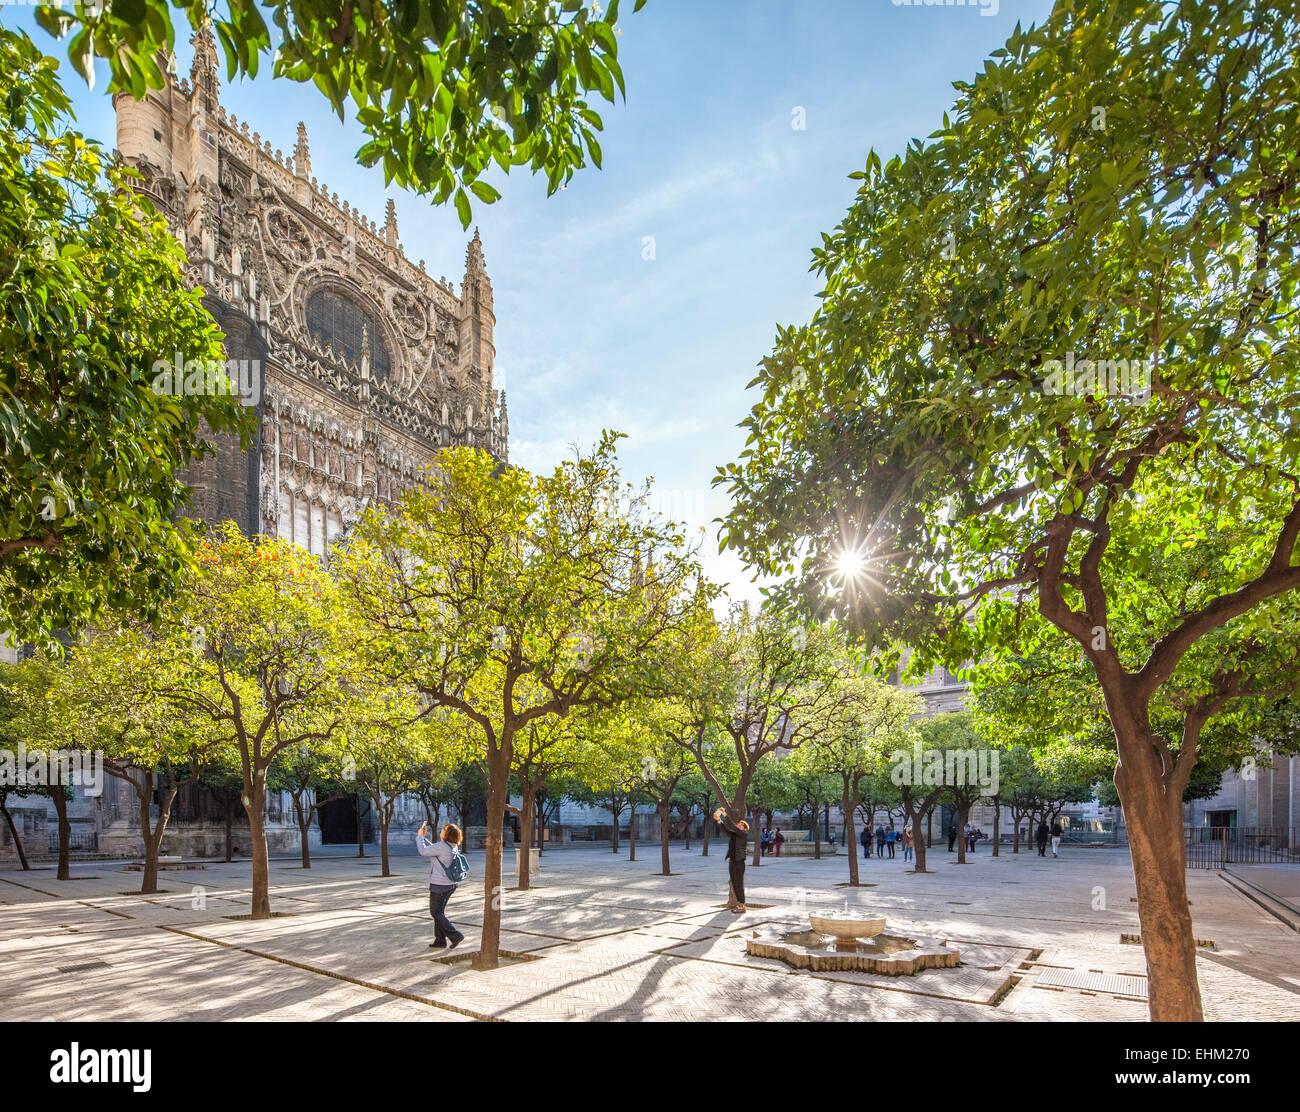 Seville Cathedral patio courtyard with orange trees with oranges and tourists taking pictures. Sevilla Catedral - Stock Image